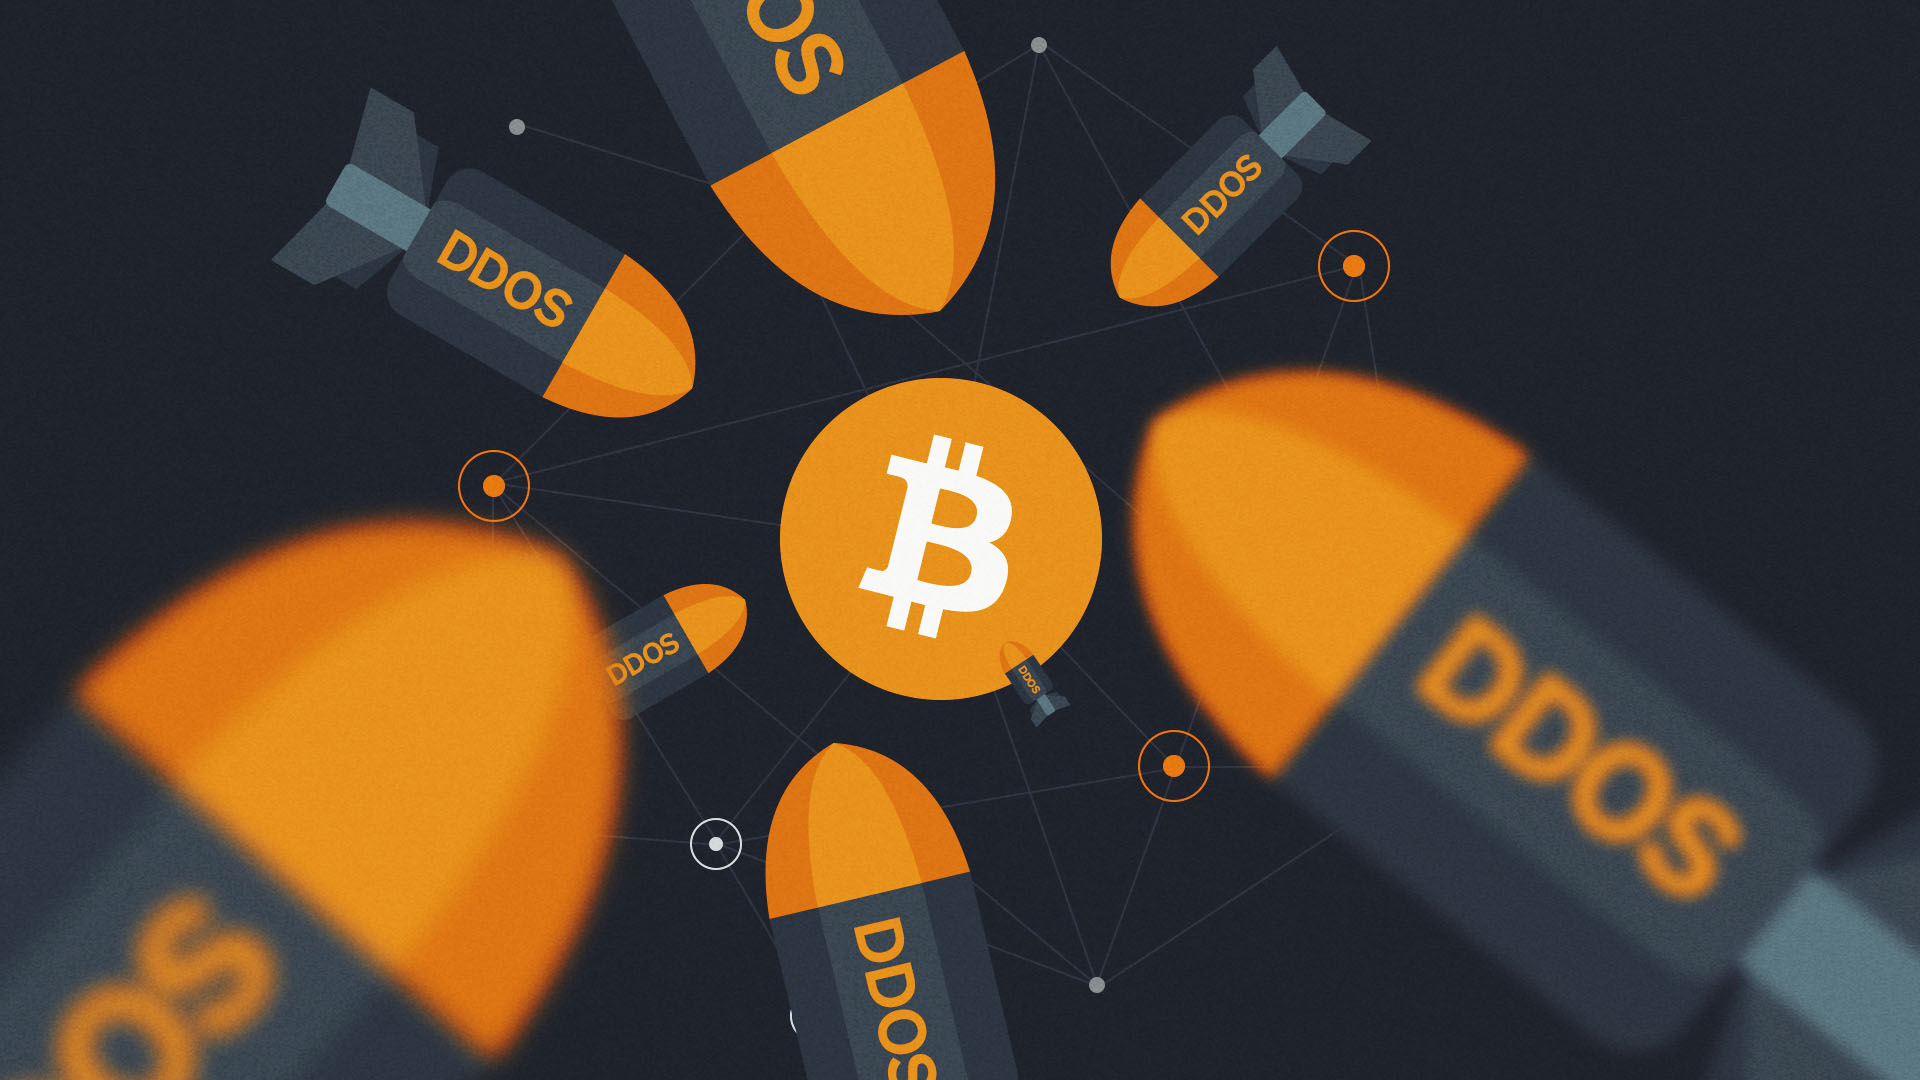 Bitcoin.org's pseudonymous host Cøbra has been served a demand for a Bitcoin ransom or else debilitating DDoS attacks will continue.